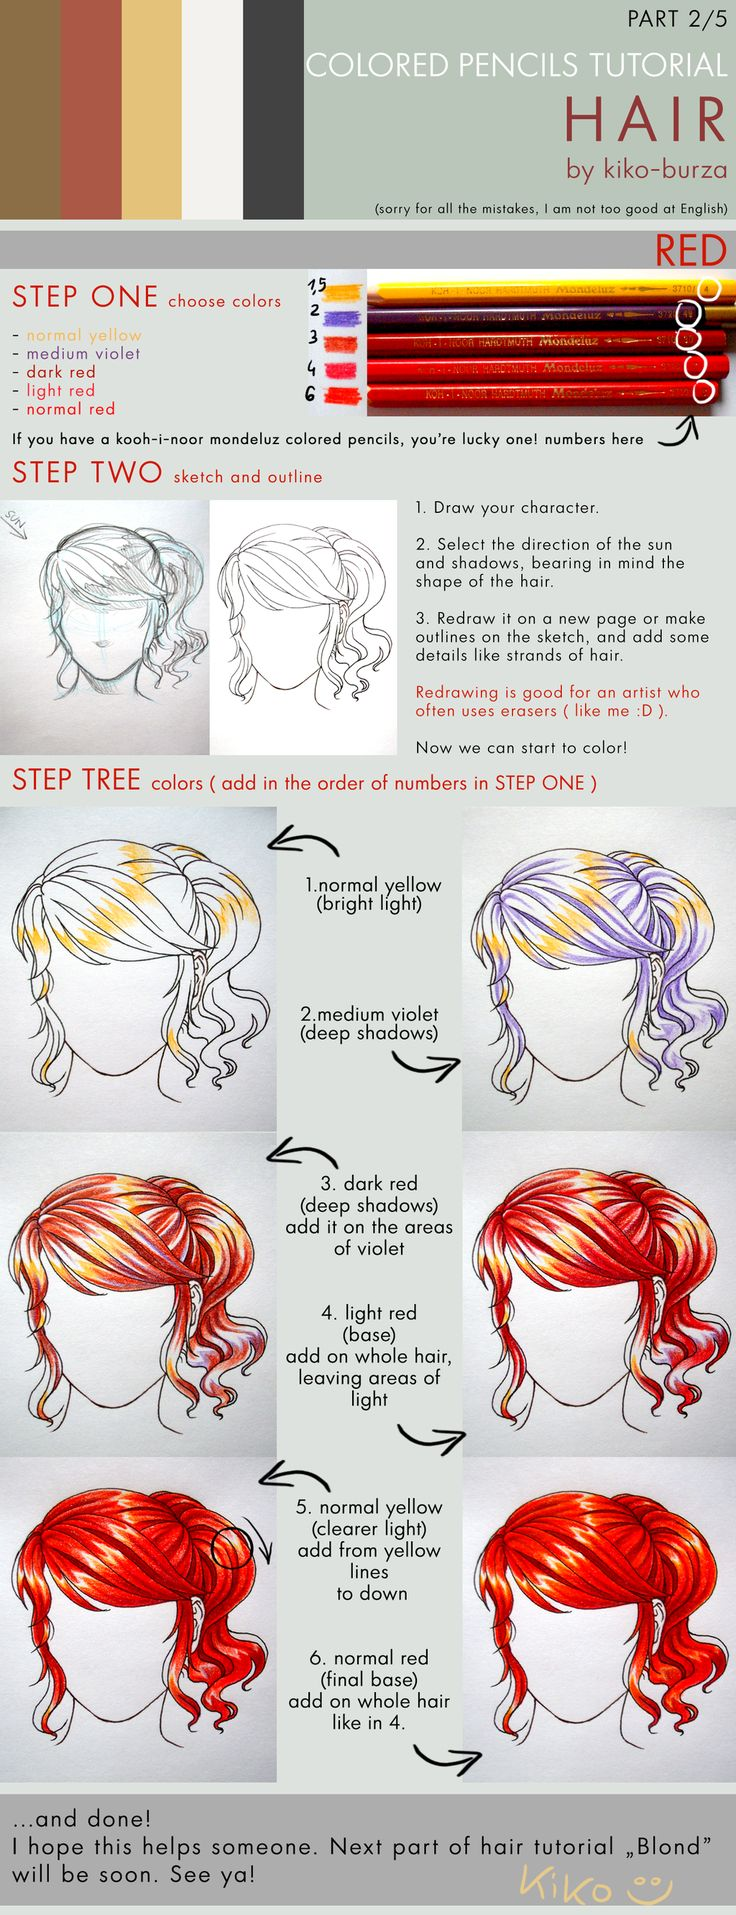 Colored pencils tutorial HAIR part 2 by kiko-burza.deviantart.com on @deviantART